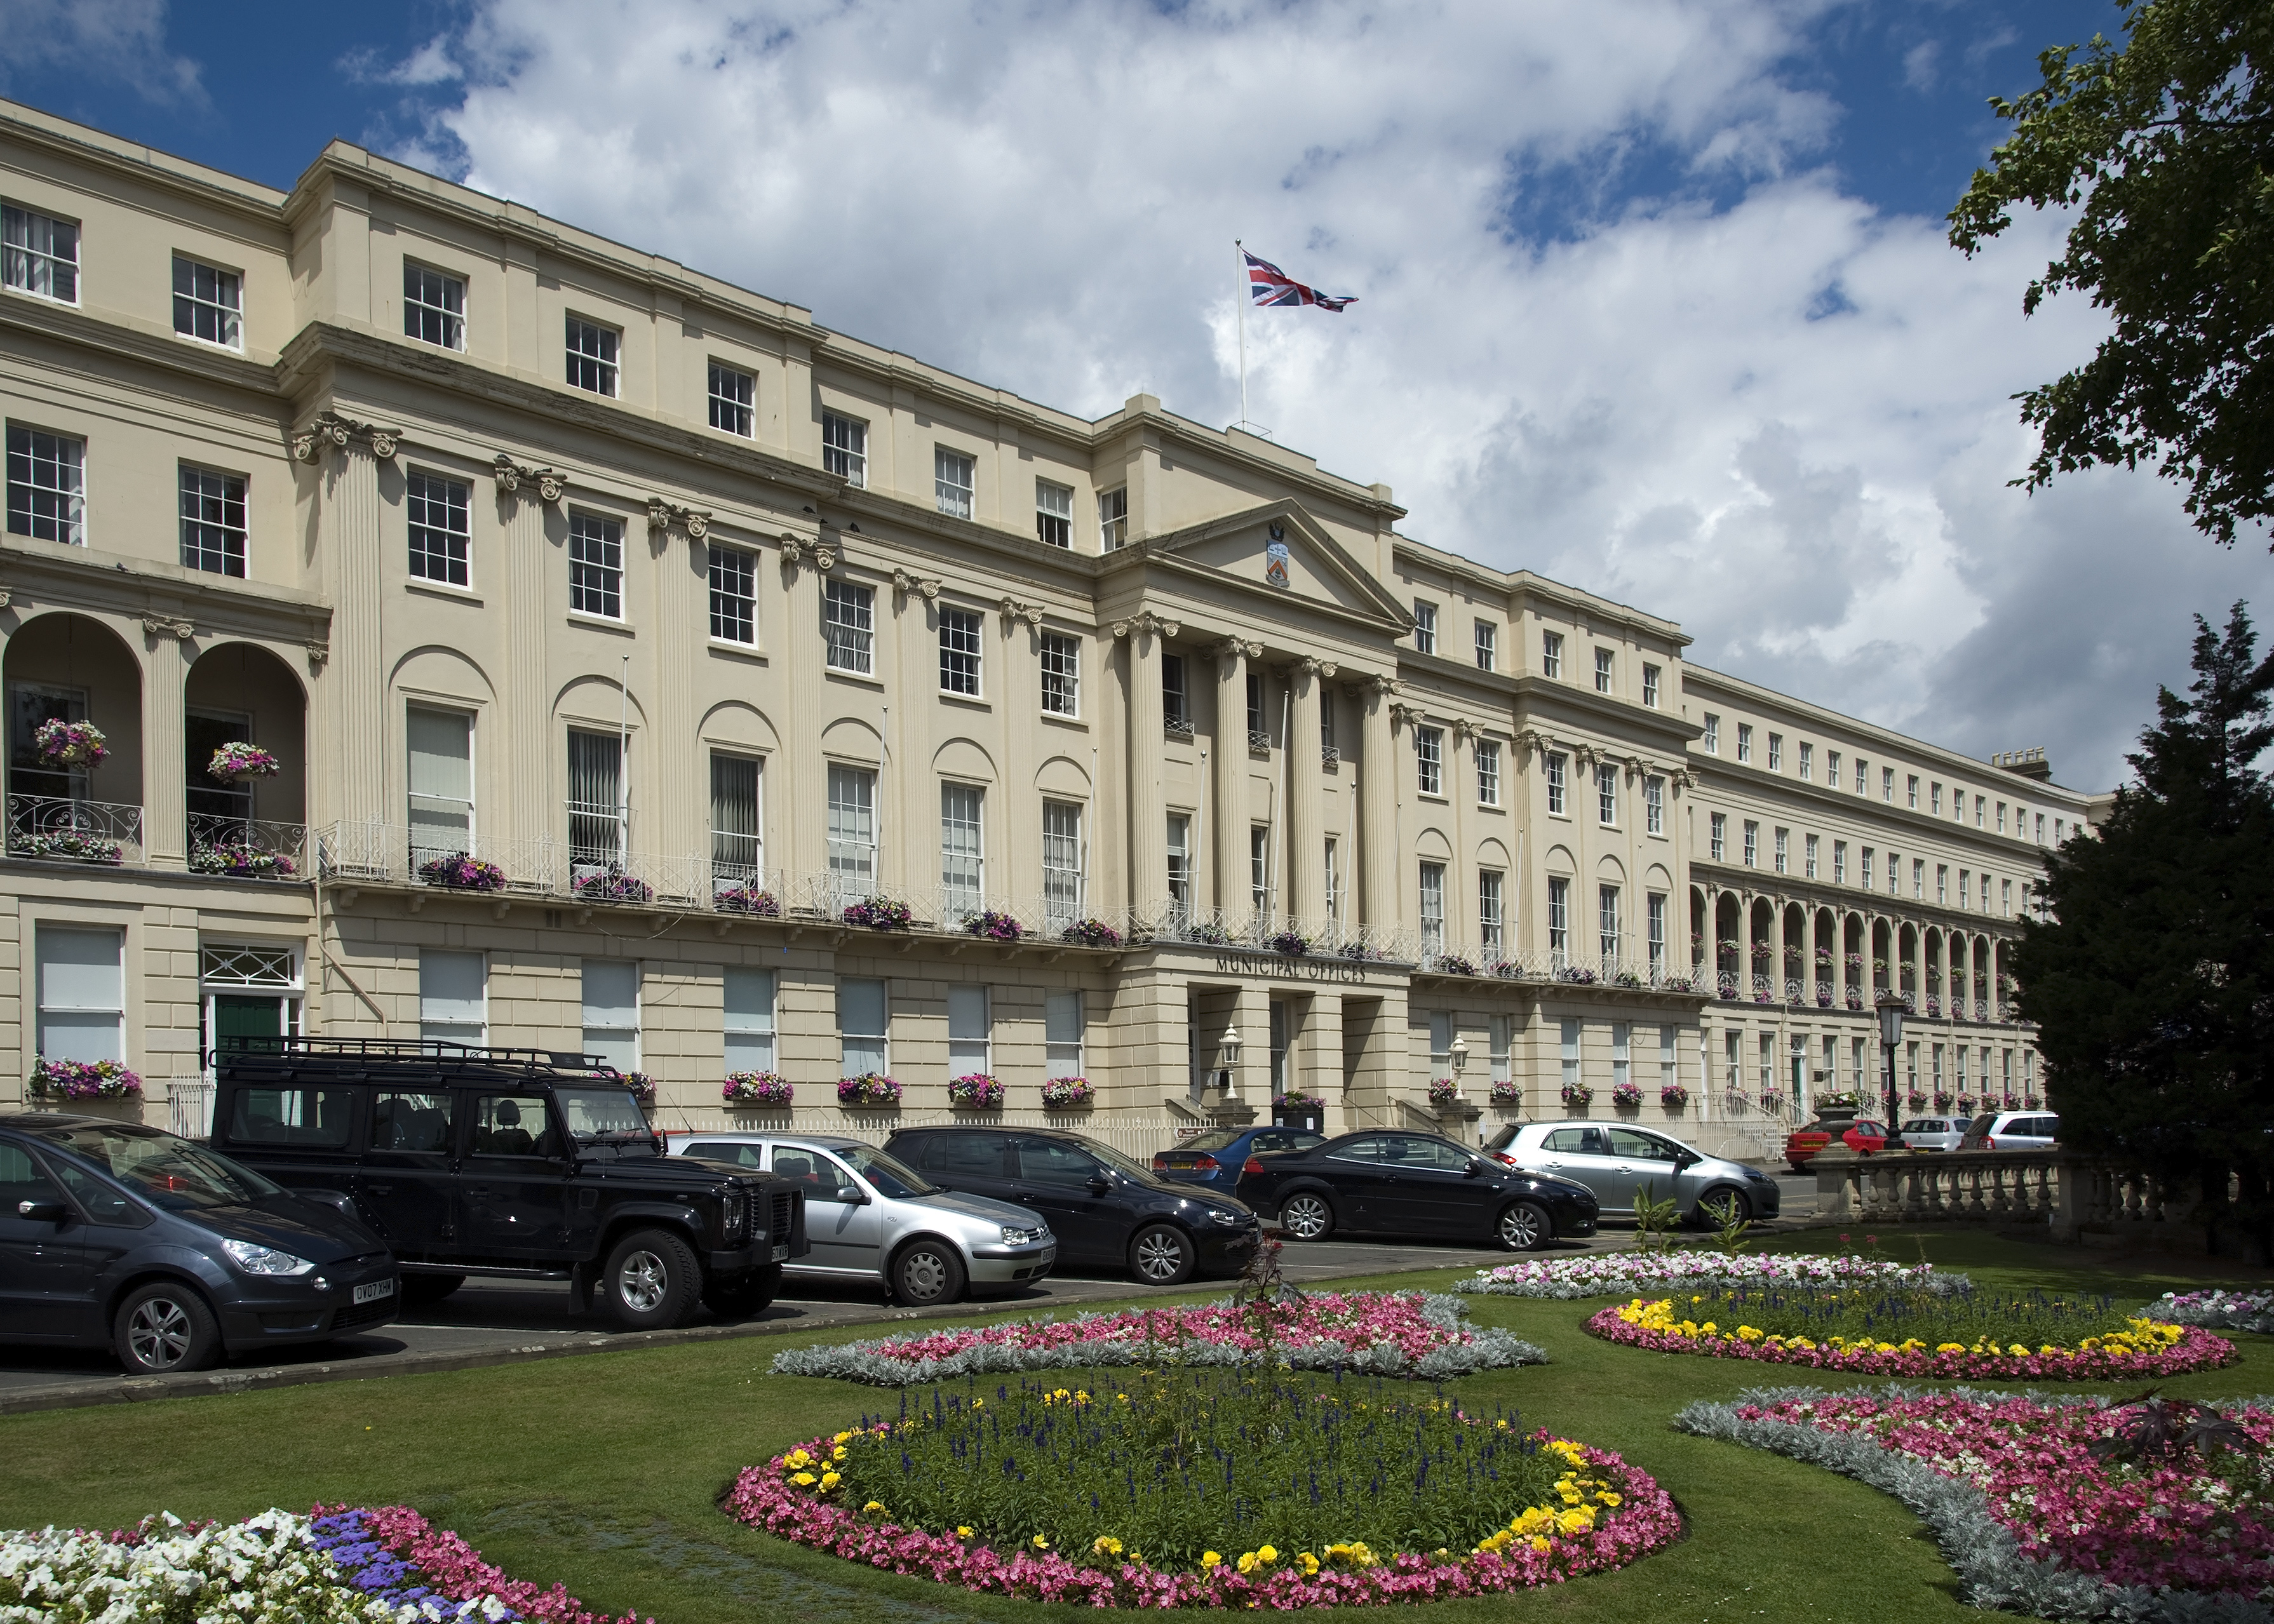 Taxi Cheltenham – Gatwick Airport from £155.00*